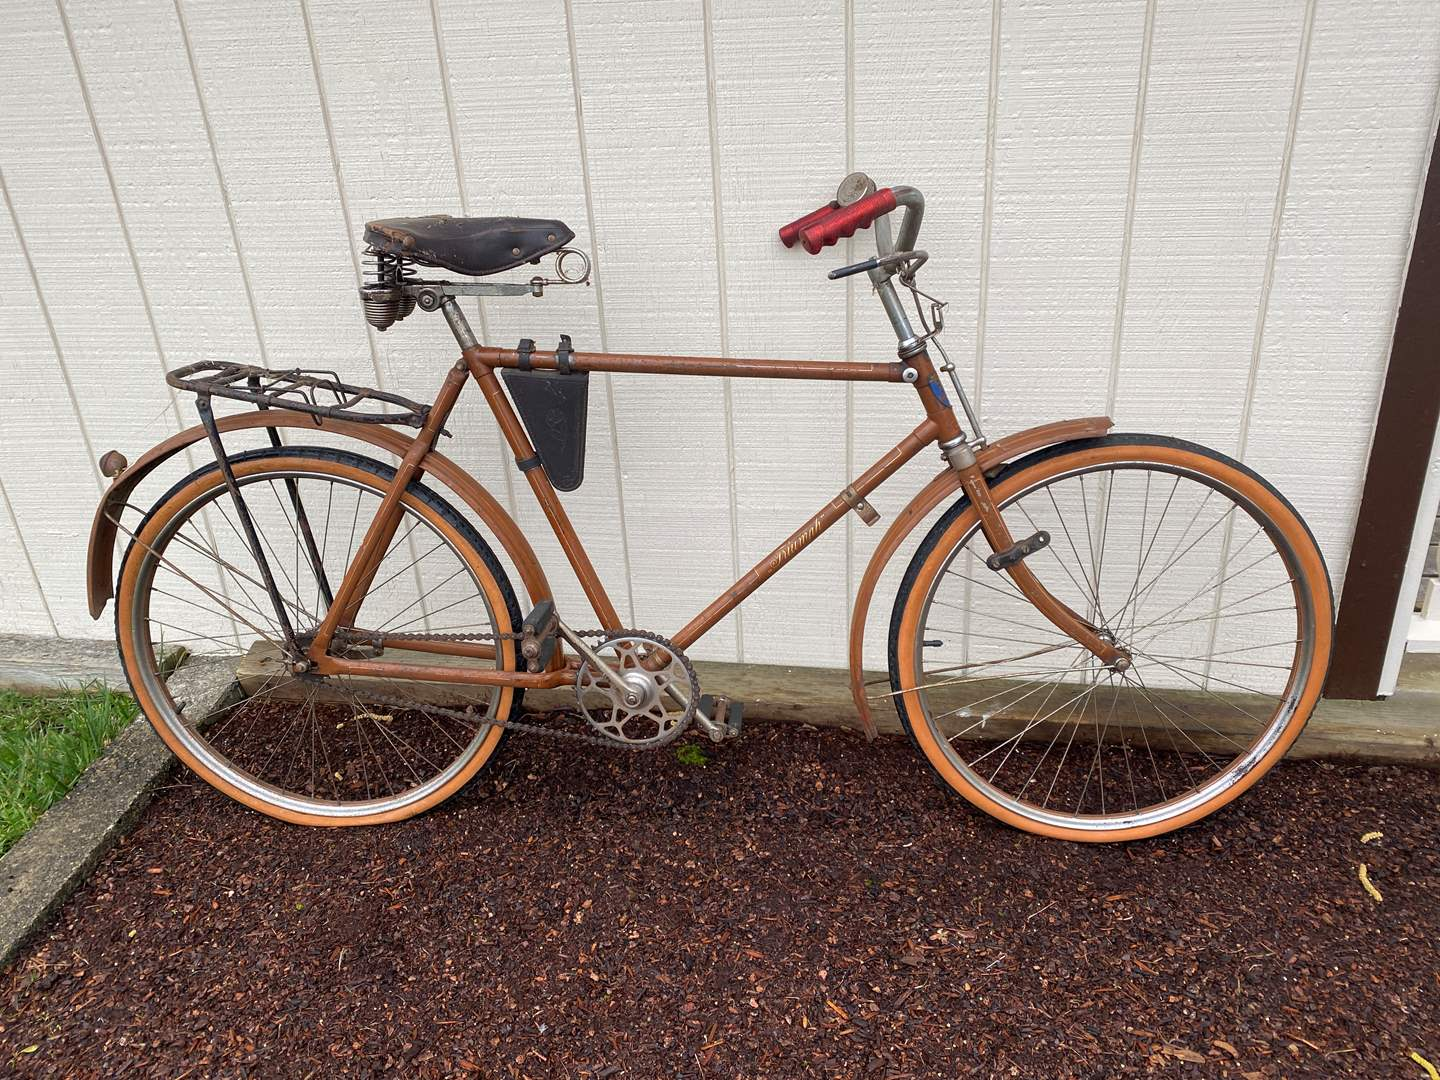 Lot # 285 - Awesome Vintage/Antique Triumph Bicycle (main image)